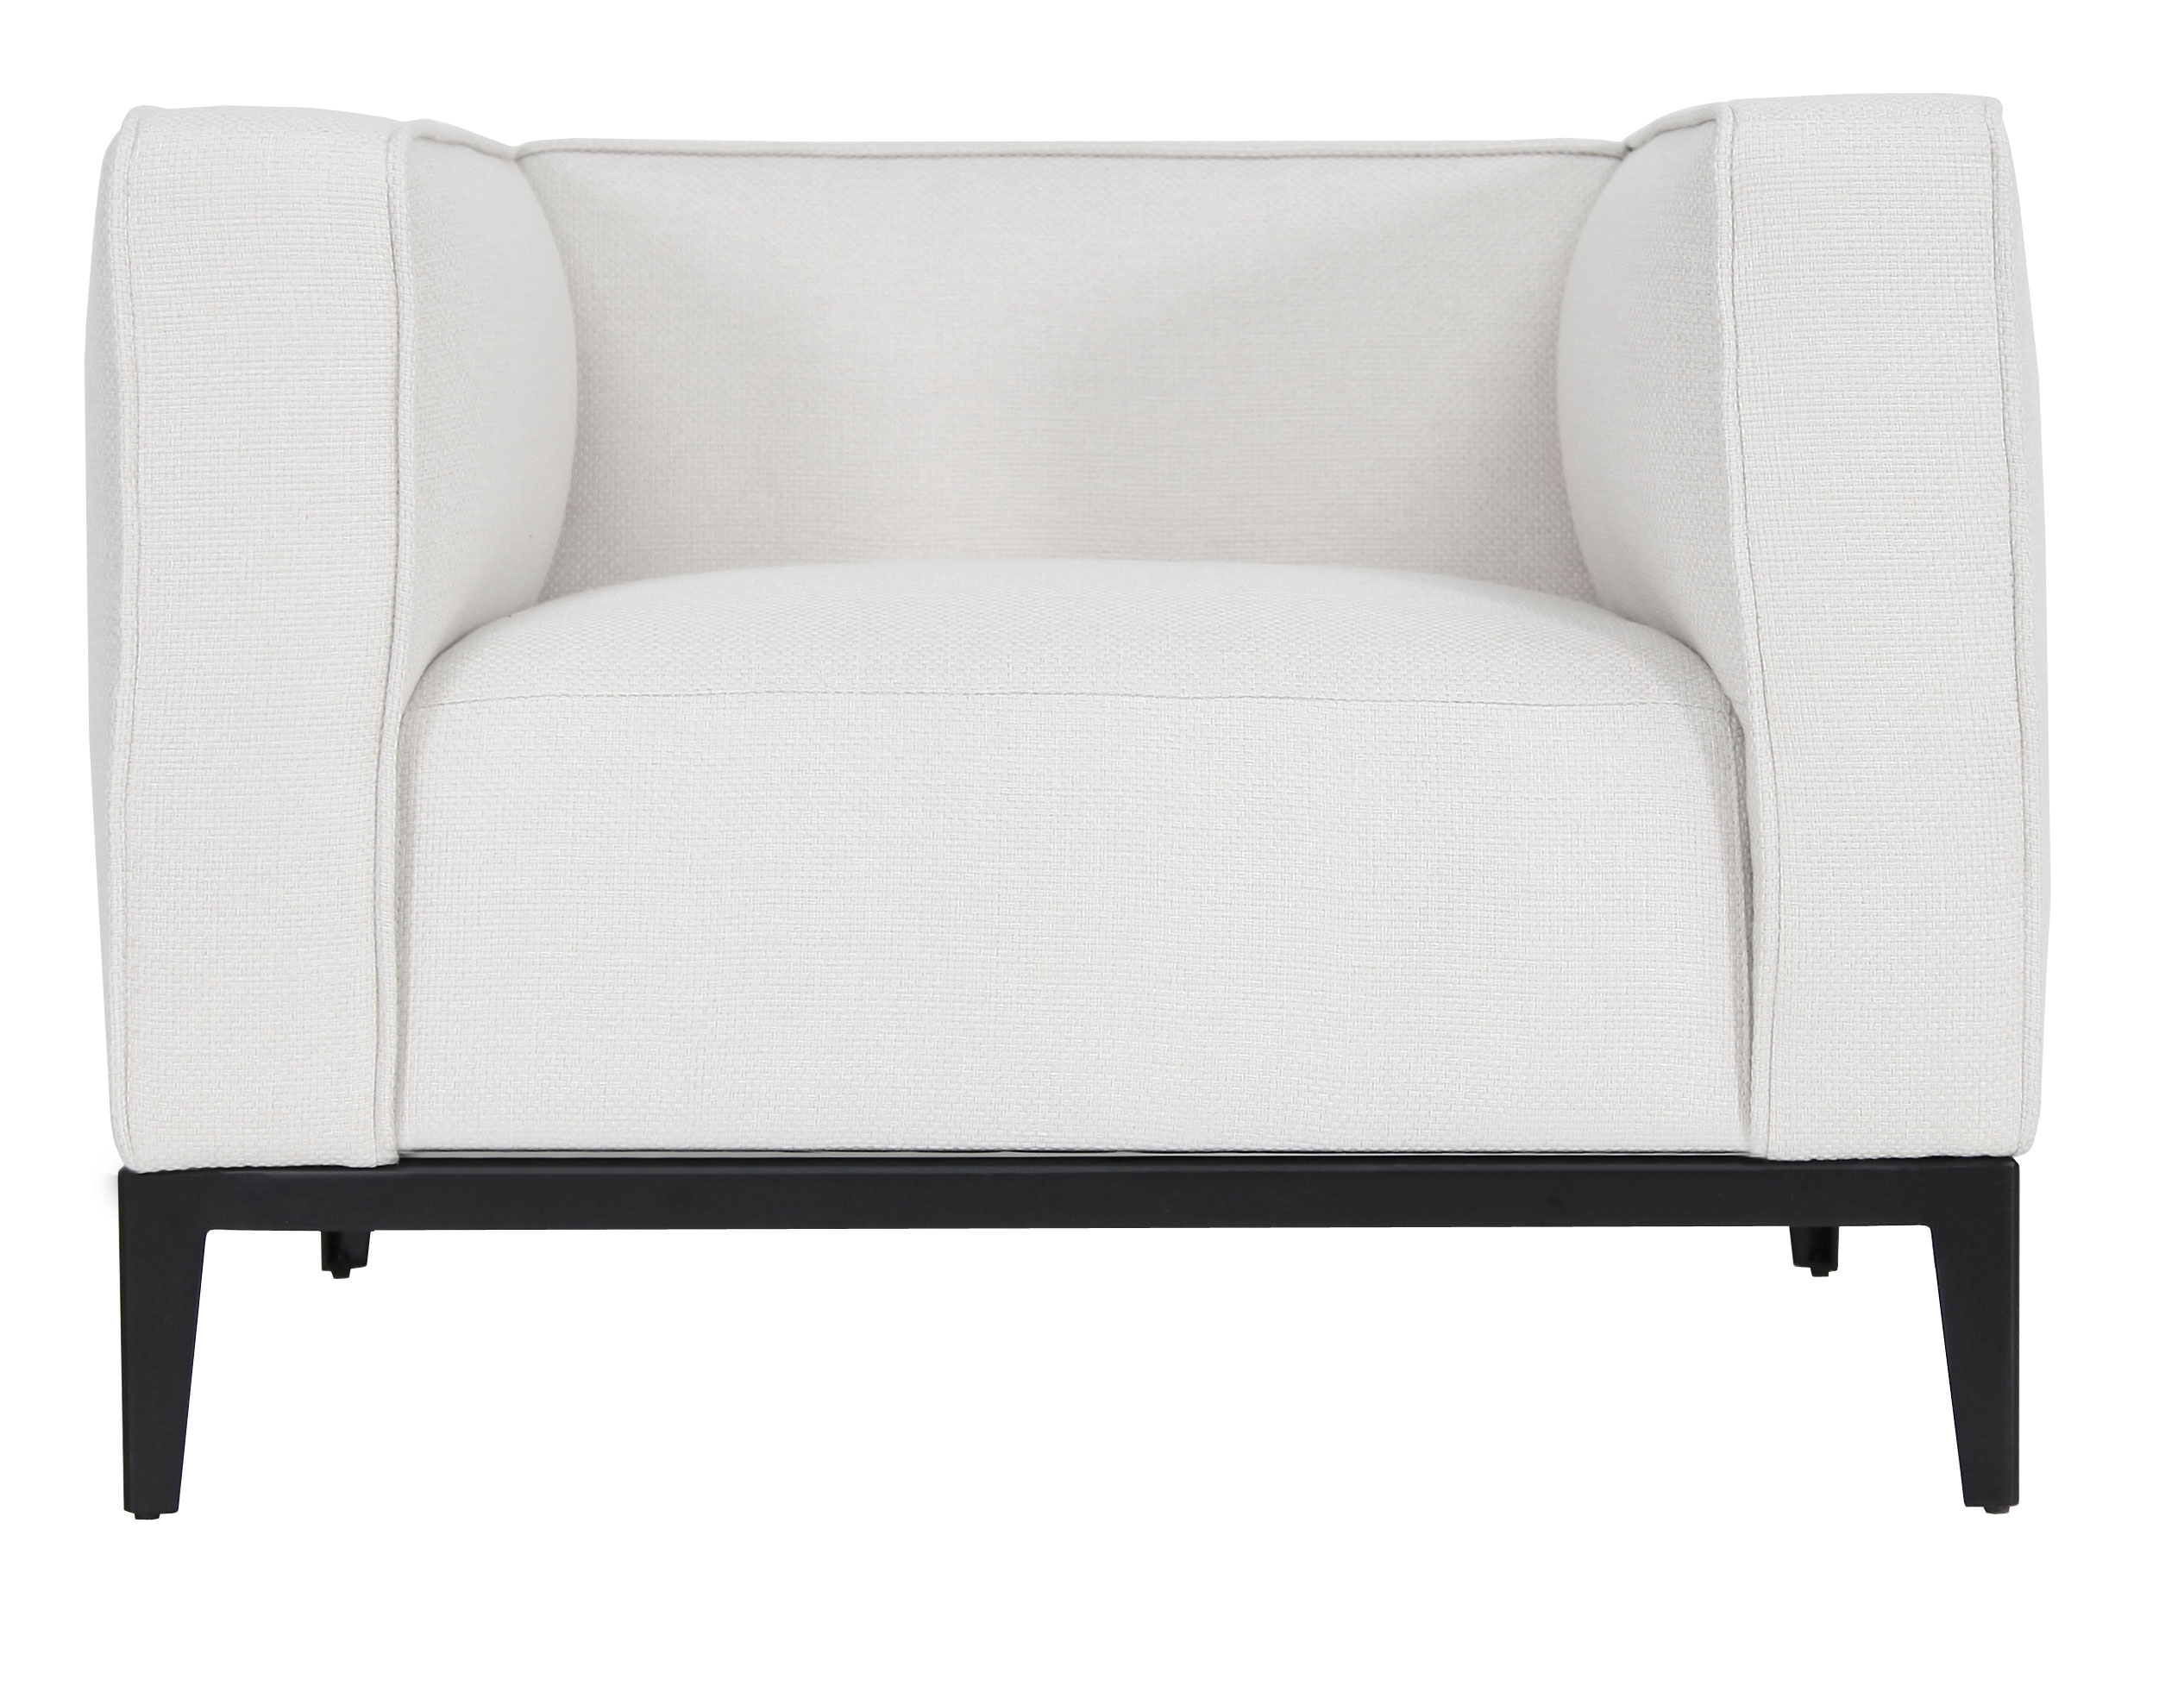 California Arm Chair | SohoConcept